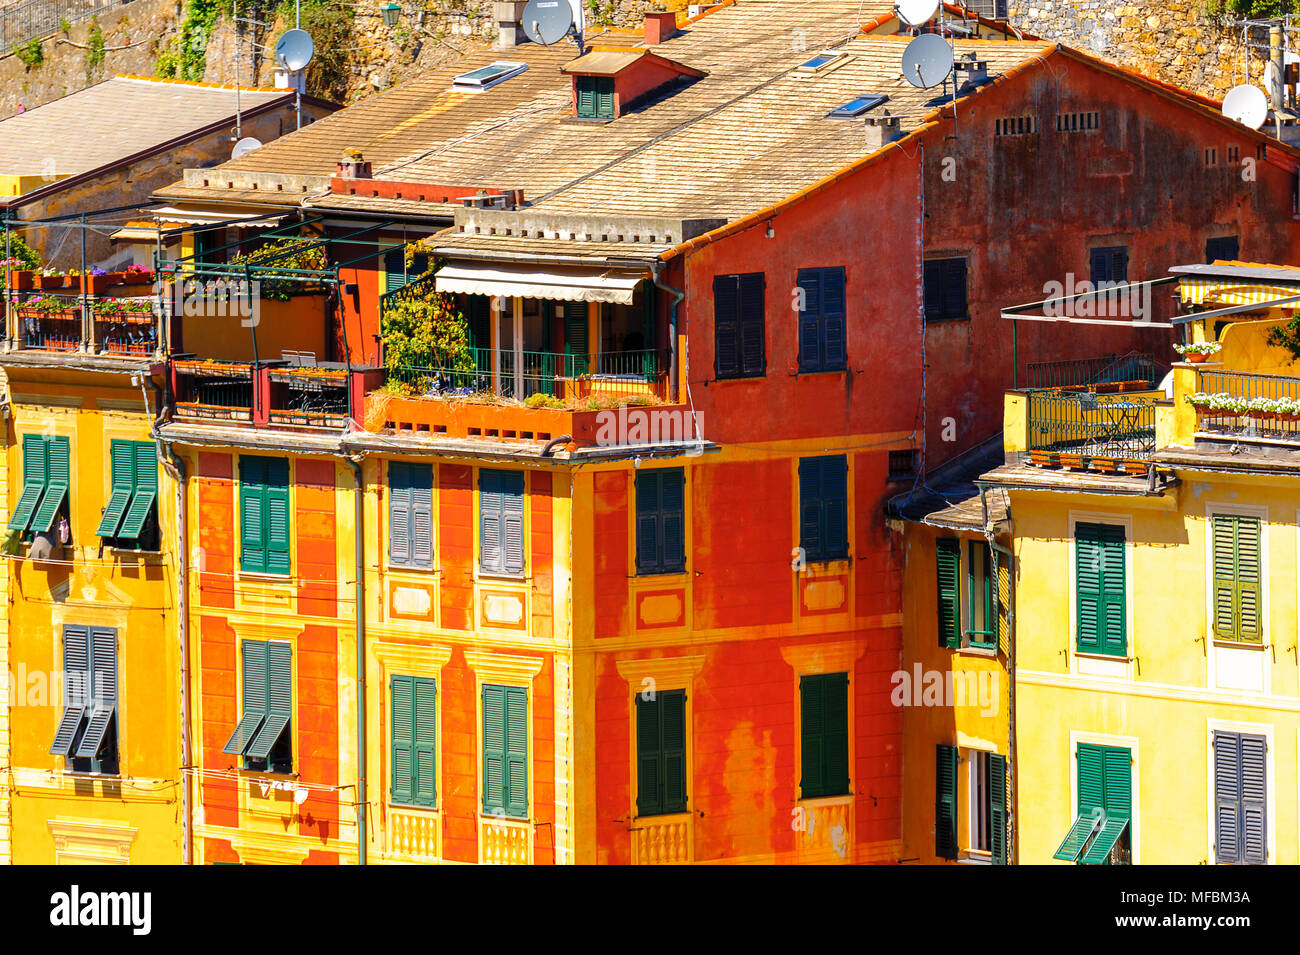 Close view of the colorful houses in Portofino, an Italian fishing village, Genoa province, Italy. A vacation resort with a picturesque harbour and wi - Stock Image